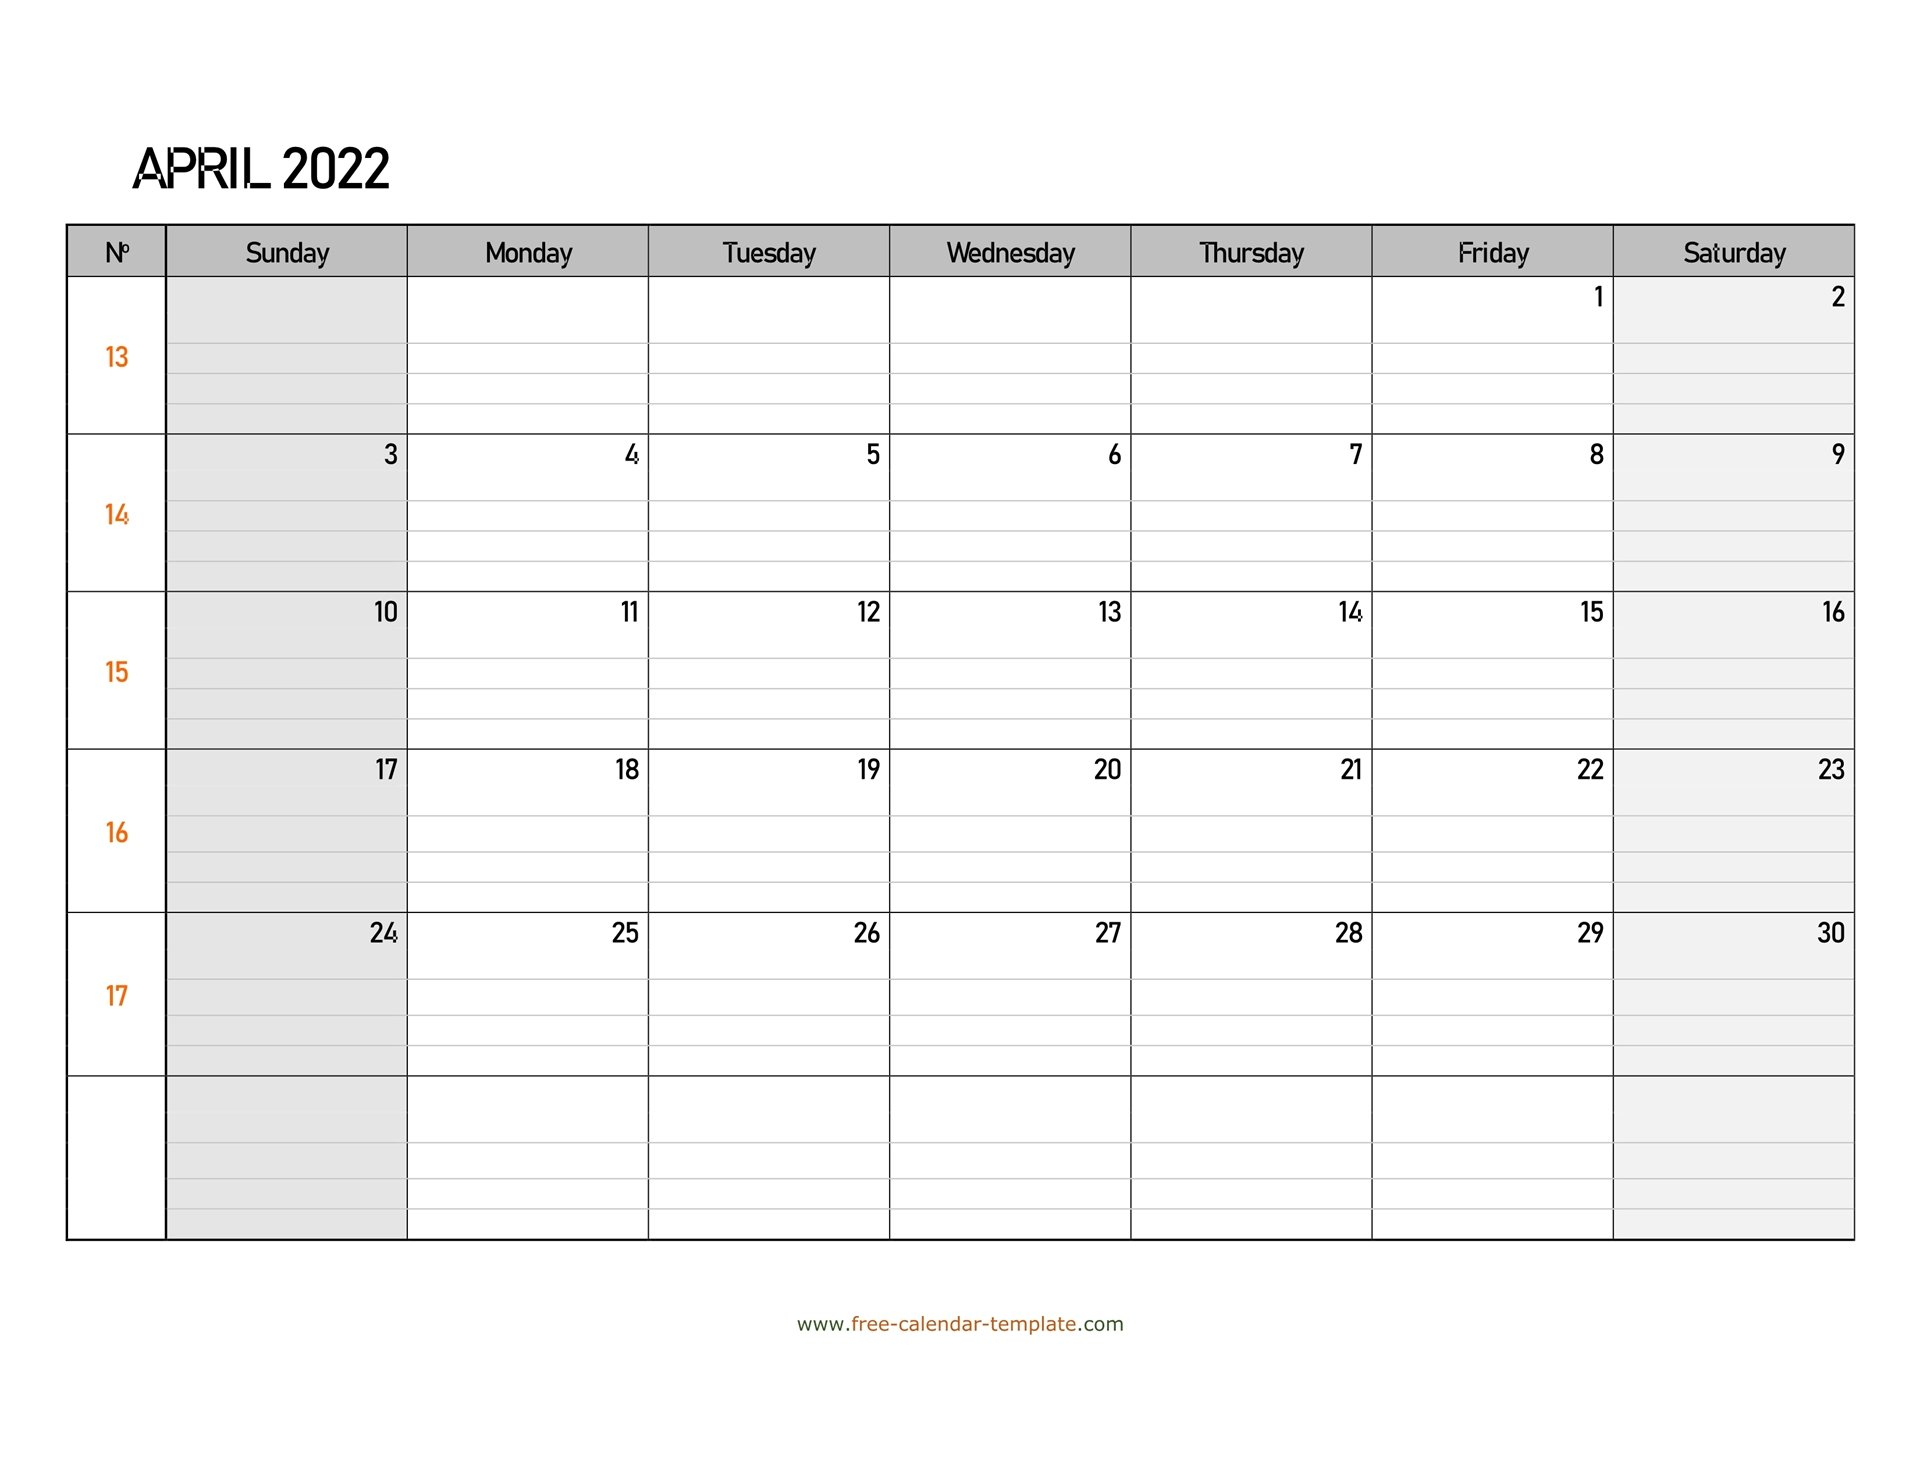 April 2022 Calendar Free Printable With Grid Lines for April May Calendar 2022 Photo